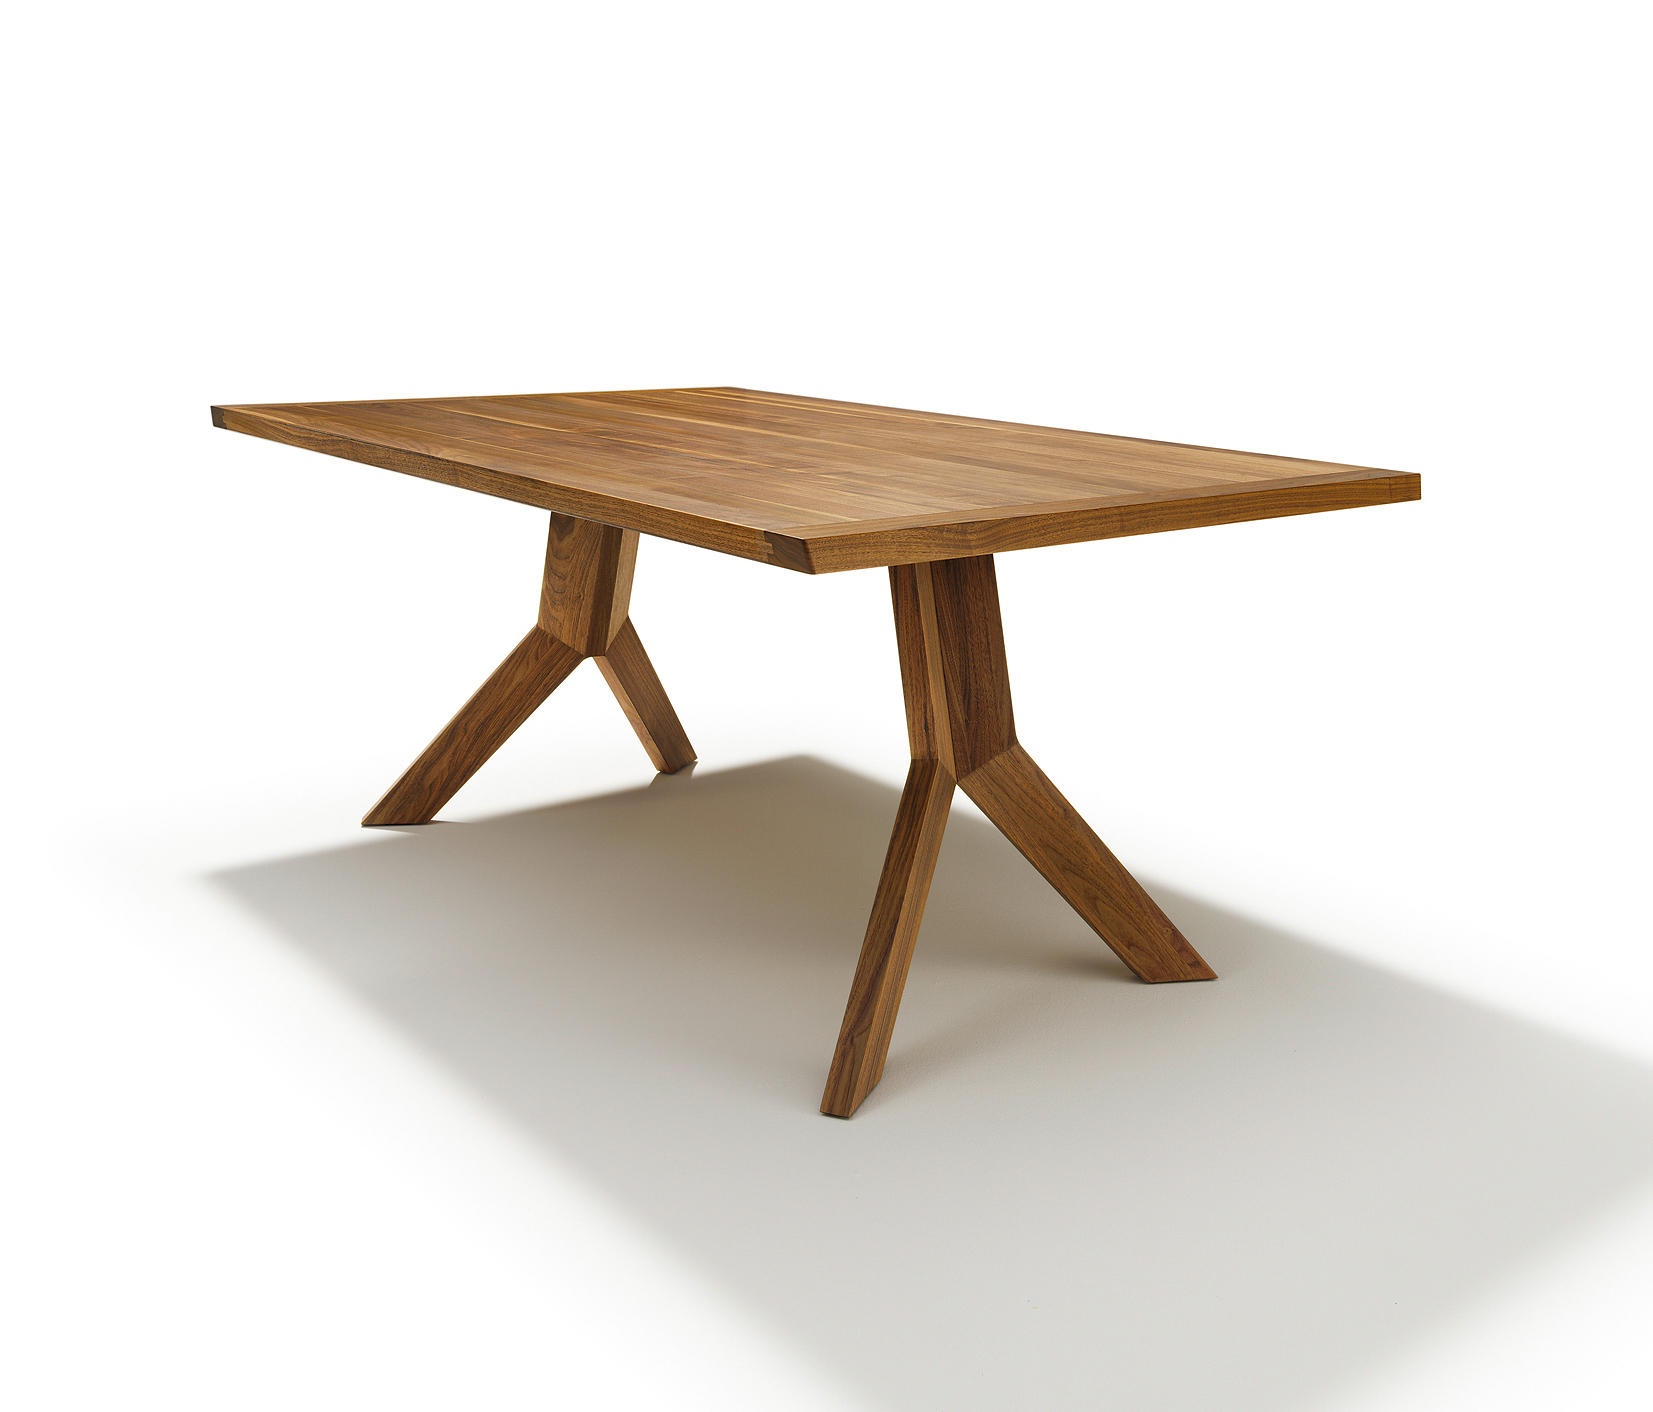 Yps fixed table dining tables from team 7 architonic for Team 7 tisch